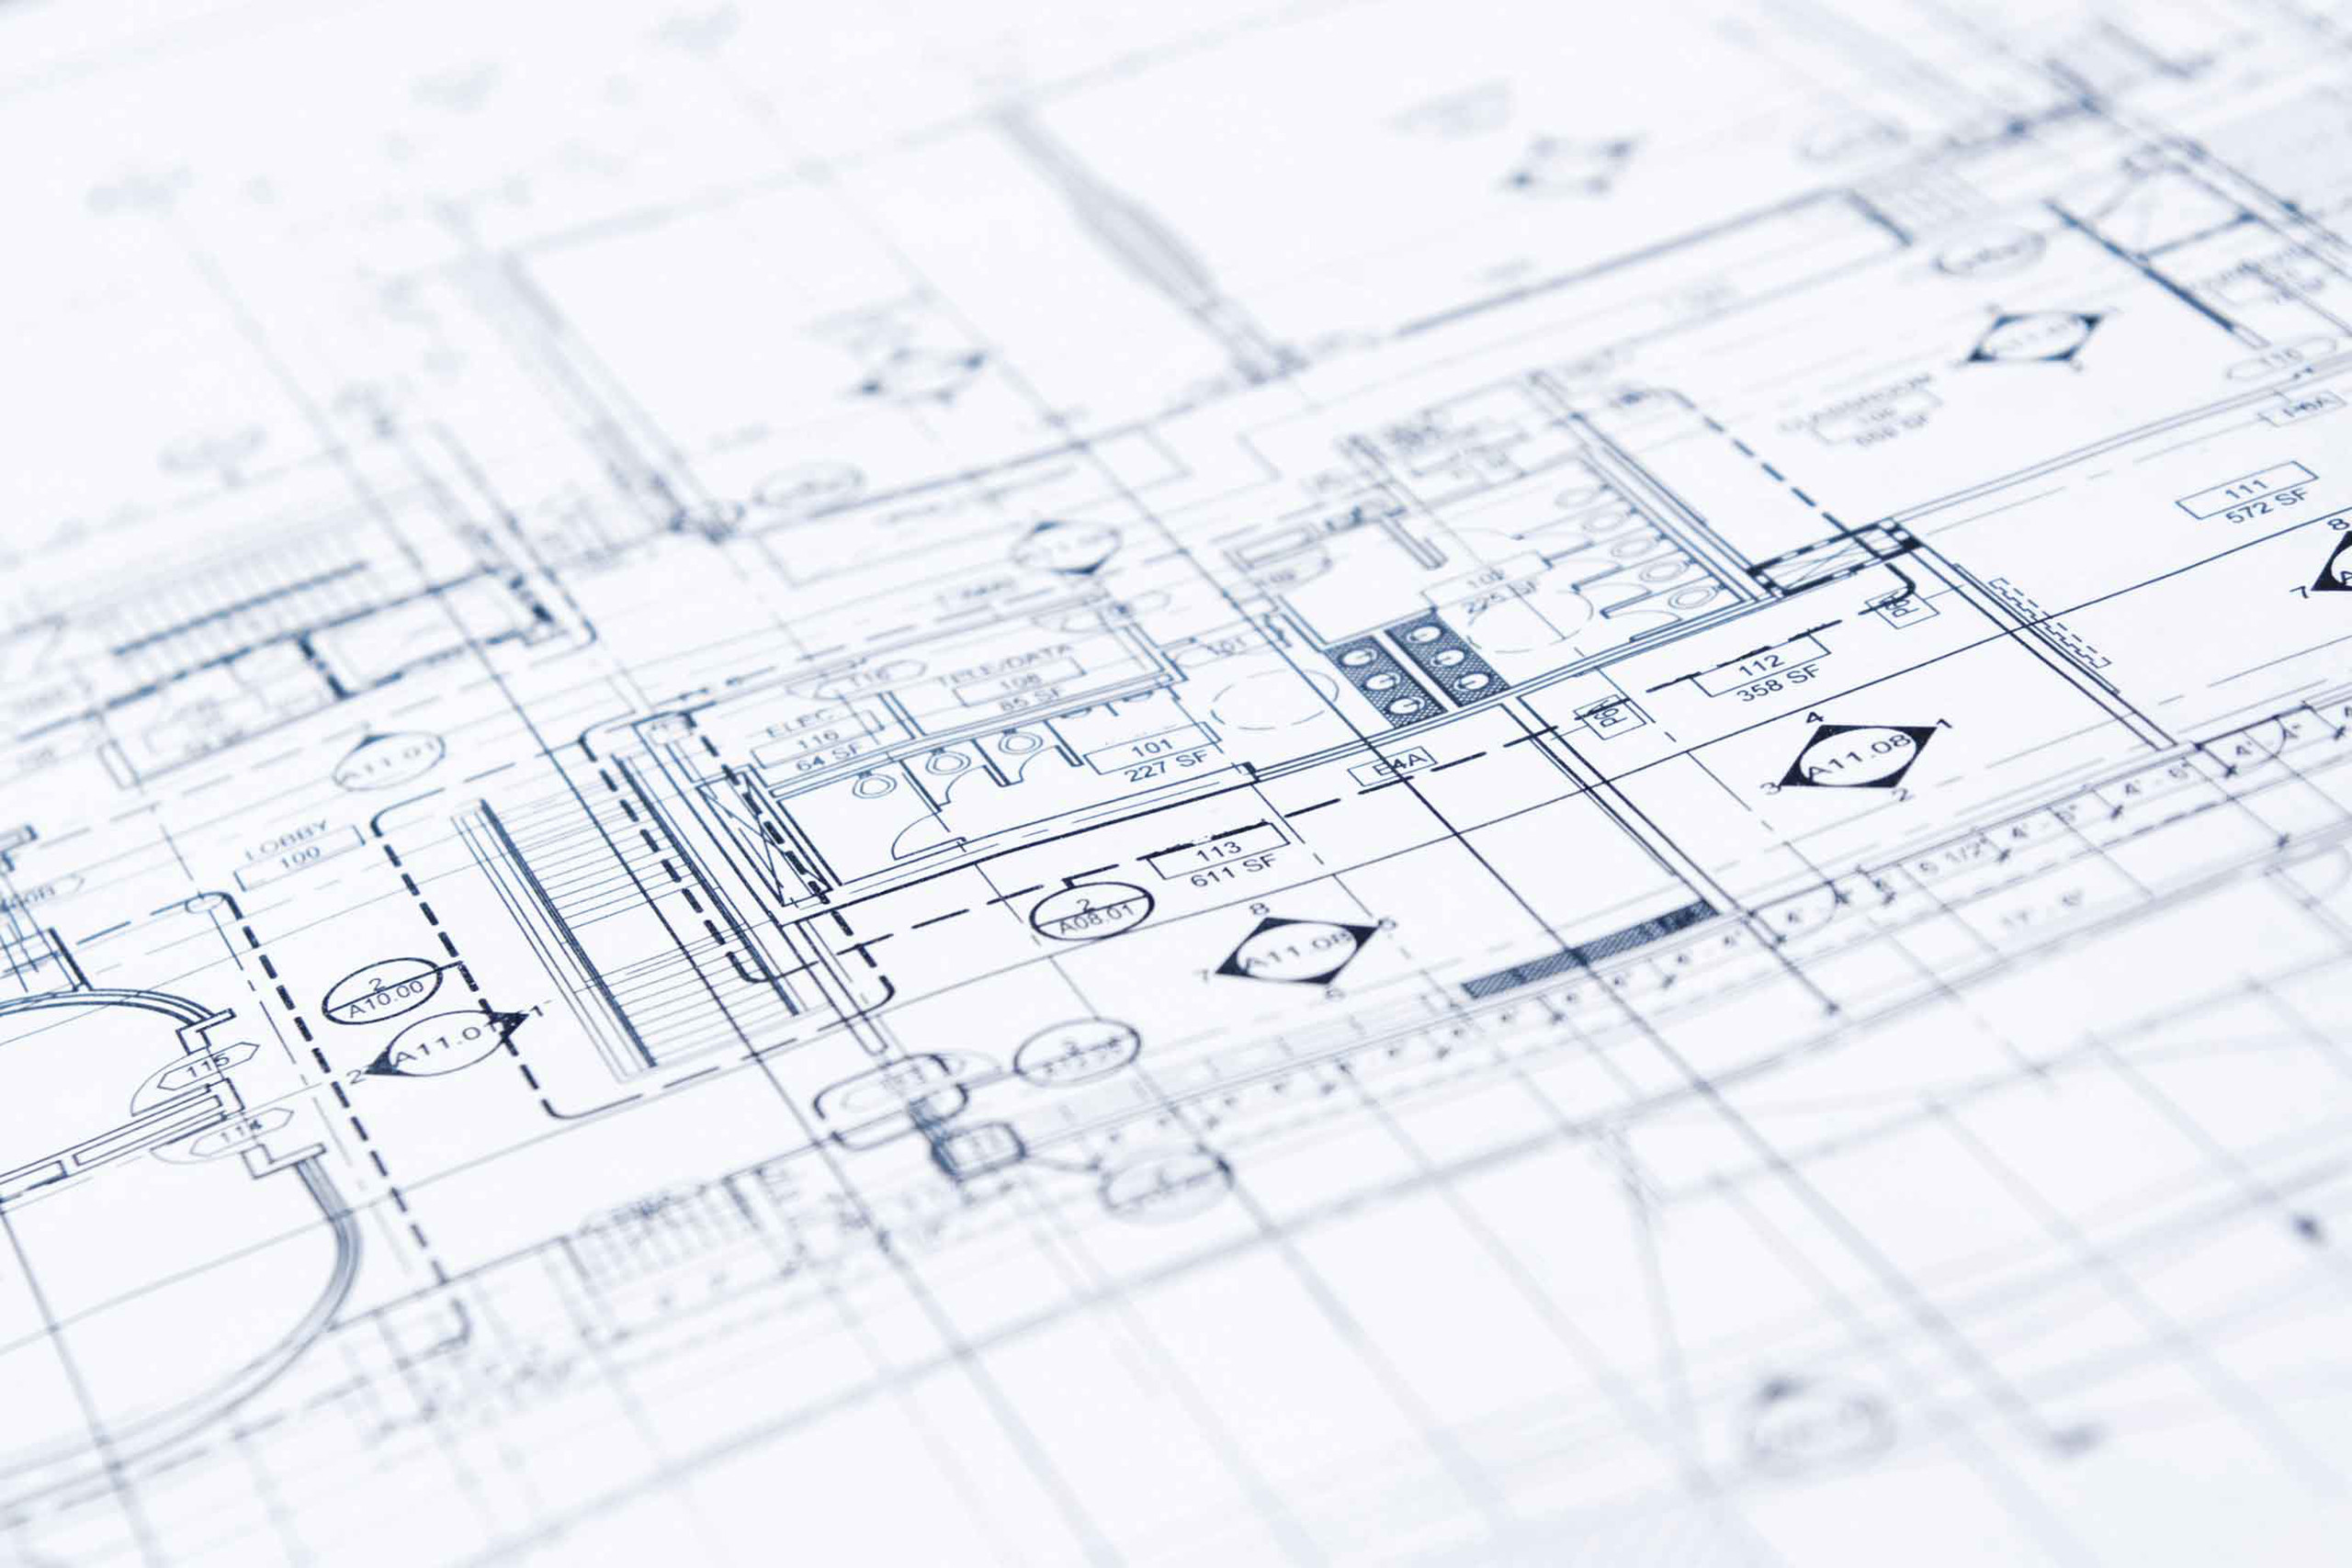 Blue print background 46 images 2560x1707 blueprint background malvernweather Image collections